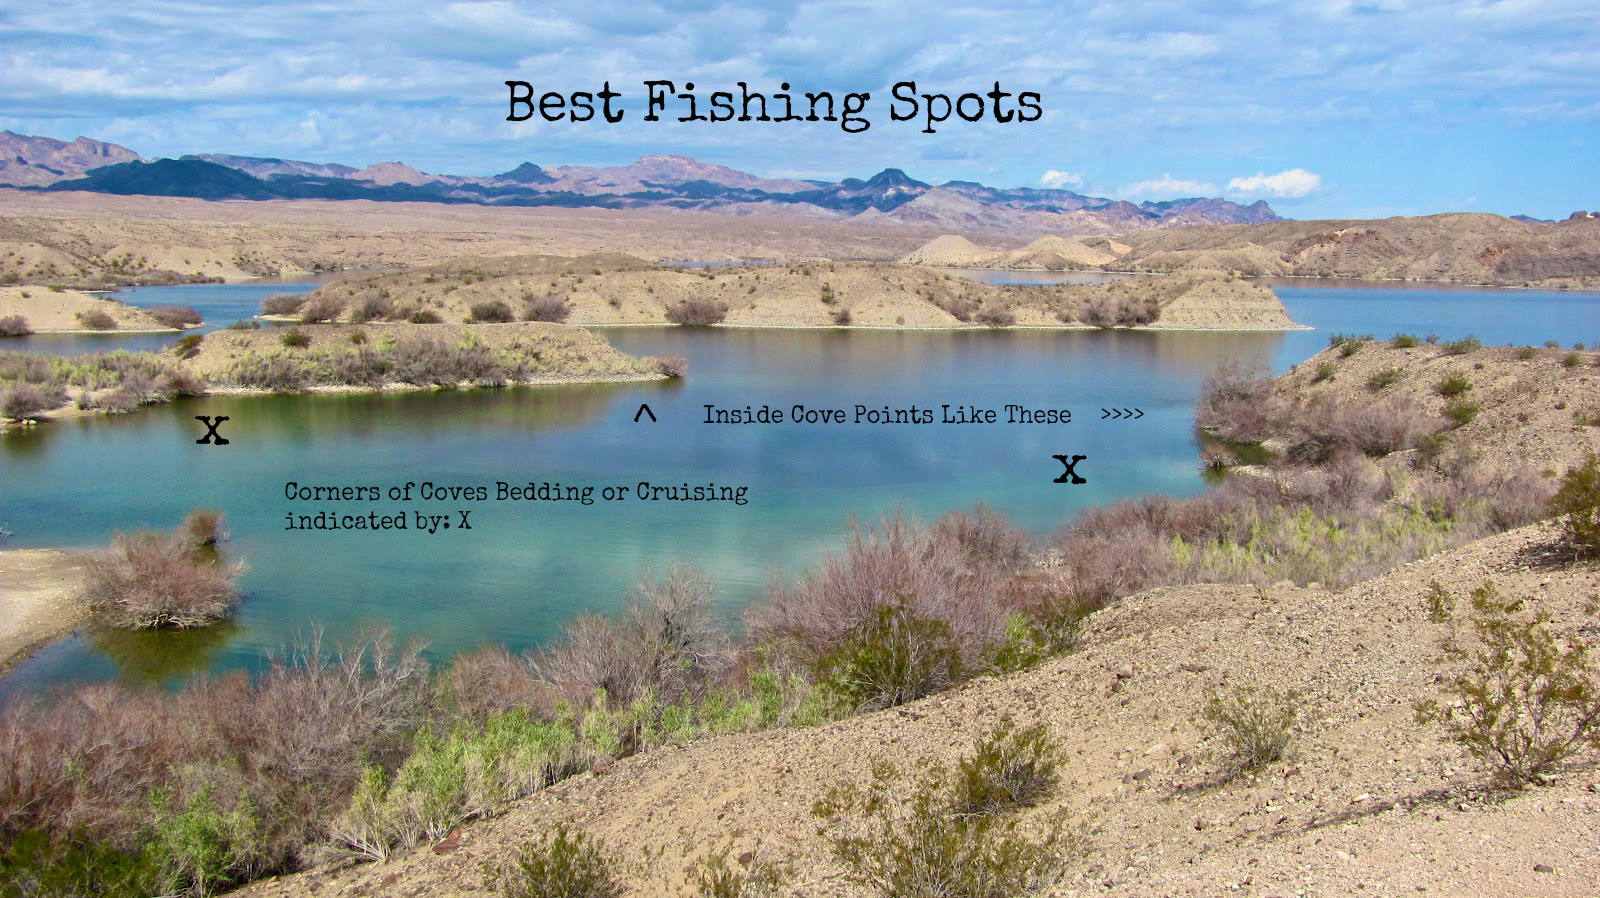 Fishing lake mohave smallmouth and largemouth bass for Good fishing places near me